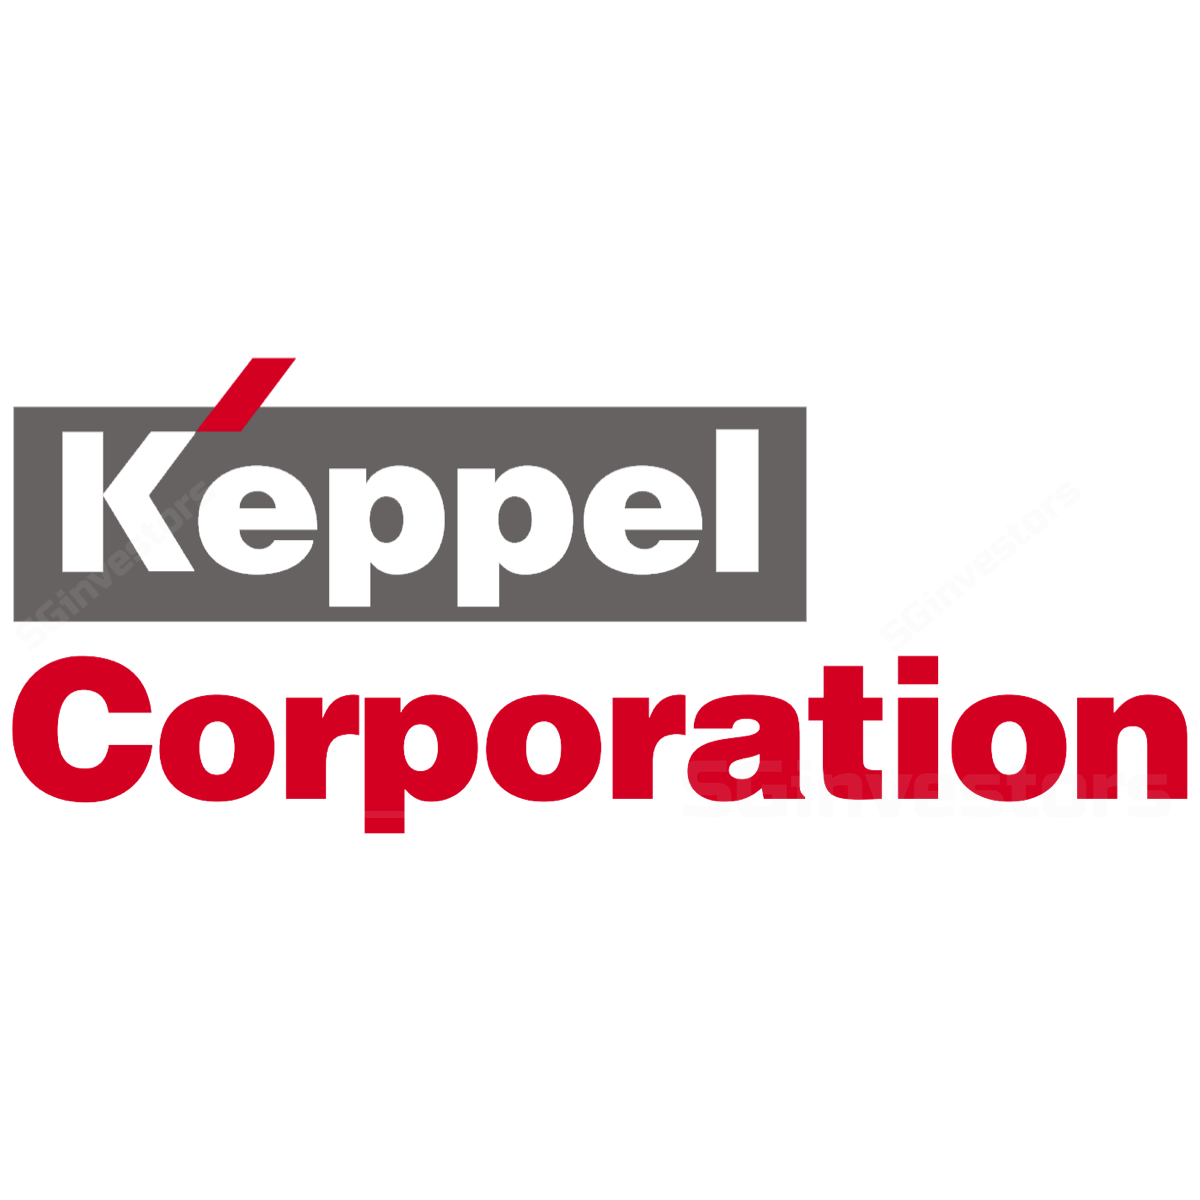 Keppel Corporation (KEP SP) - UOB Kay Hian 2017-04-21: 1Q17 Earnings Supported By S$143m In One-offs, O&M Barely Breaks Even